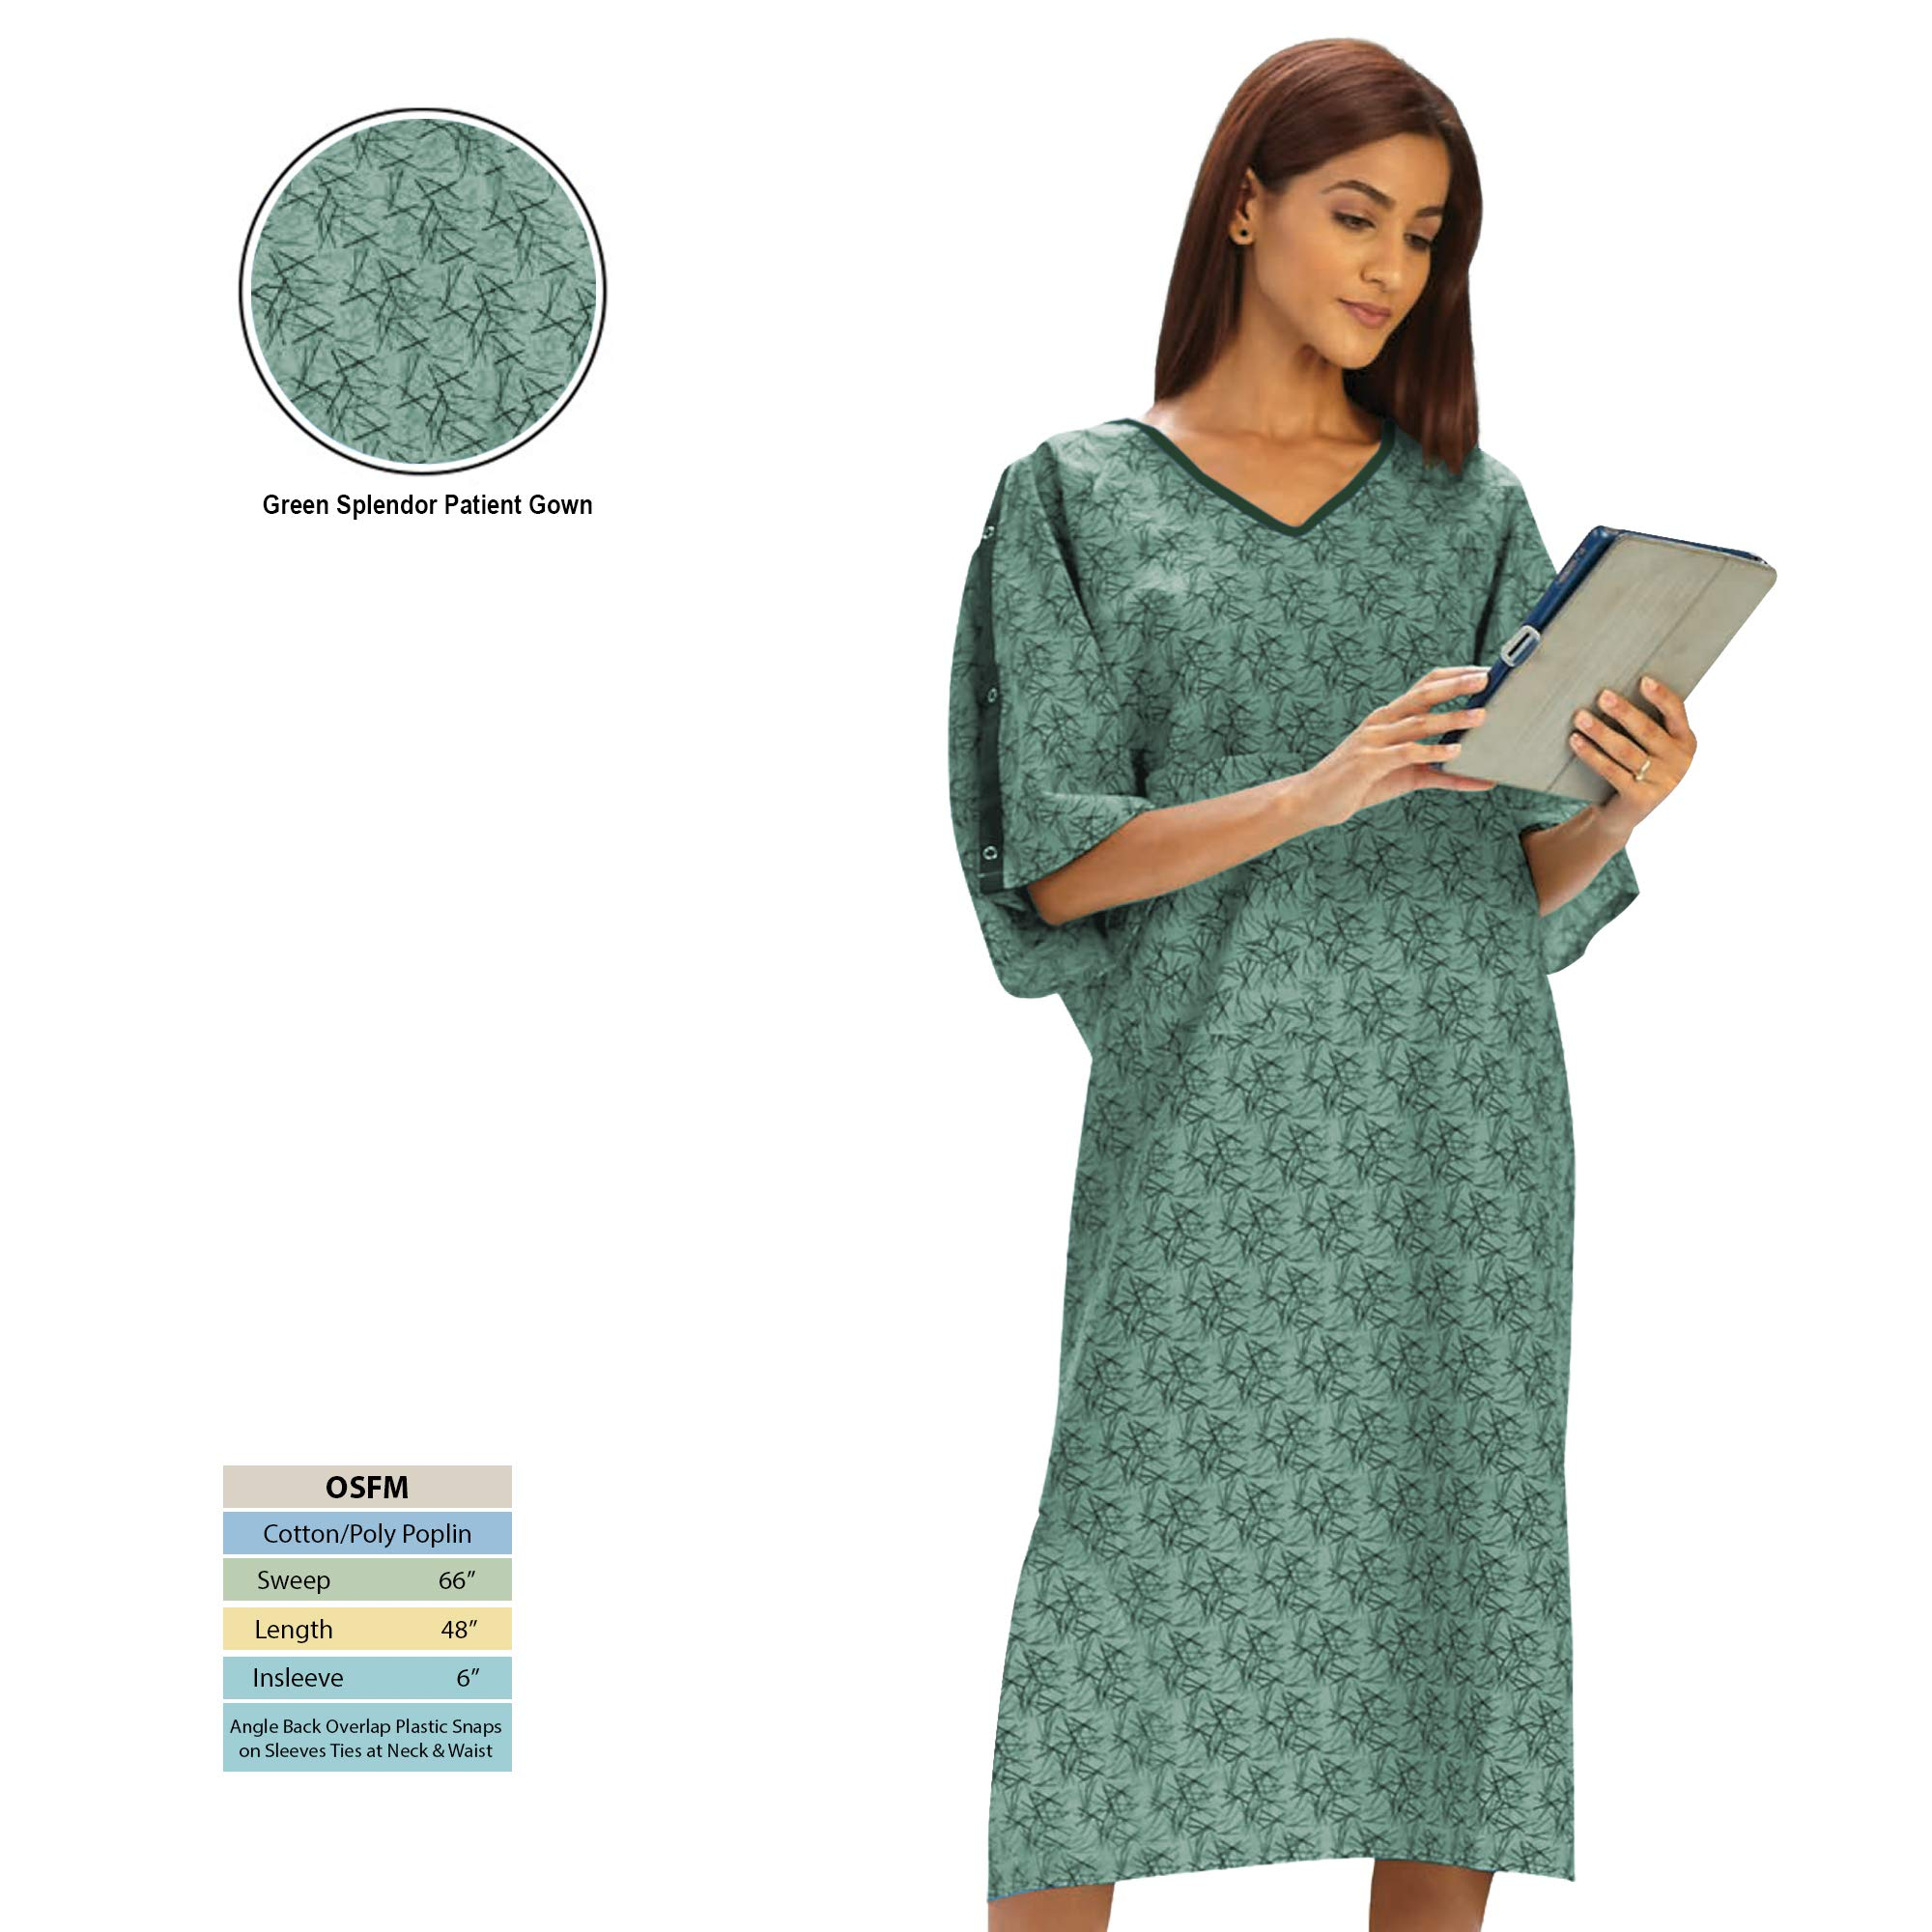 Personal Touch Unisex Hospital Patient Gown Plastic Snap IV Sleeves with Telemetry Pocket - Green Splendor Print - One Size Pack of 4 by Personal Touch